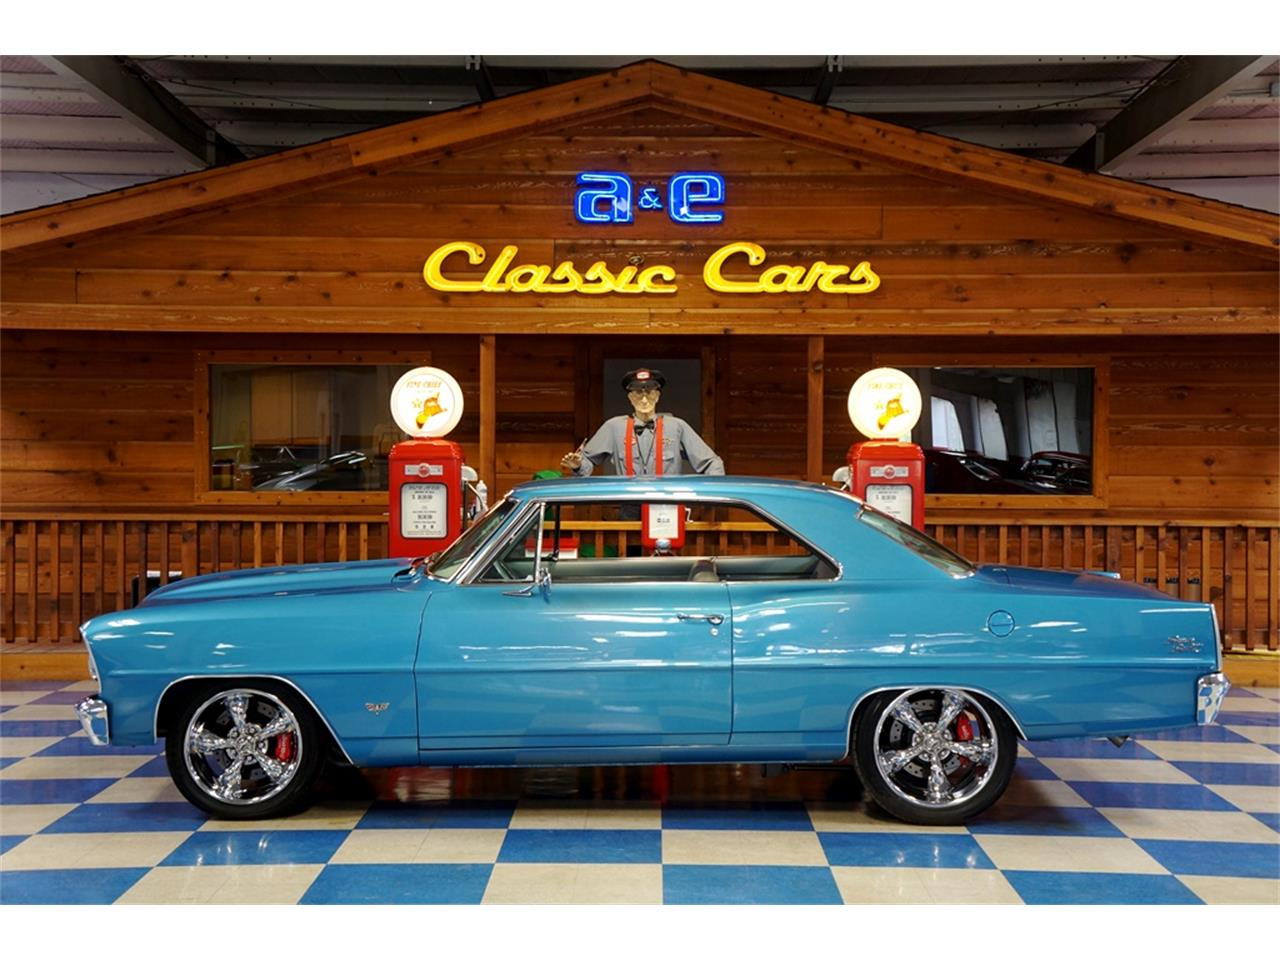 Large Picture of Classic 1966 Nova located in Texas - $64,900.00 Offered by A&E Classic Cars - PWOL